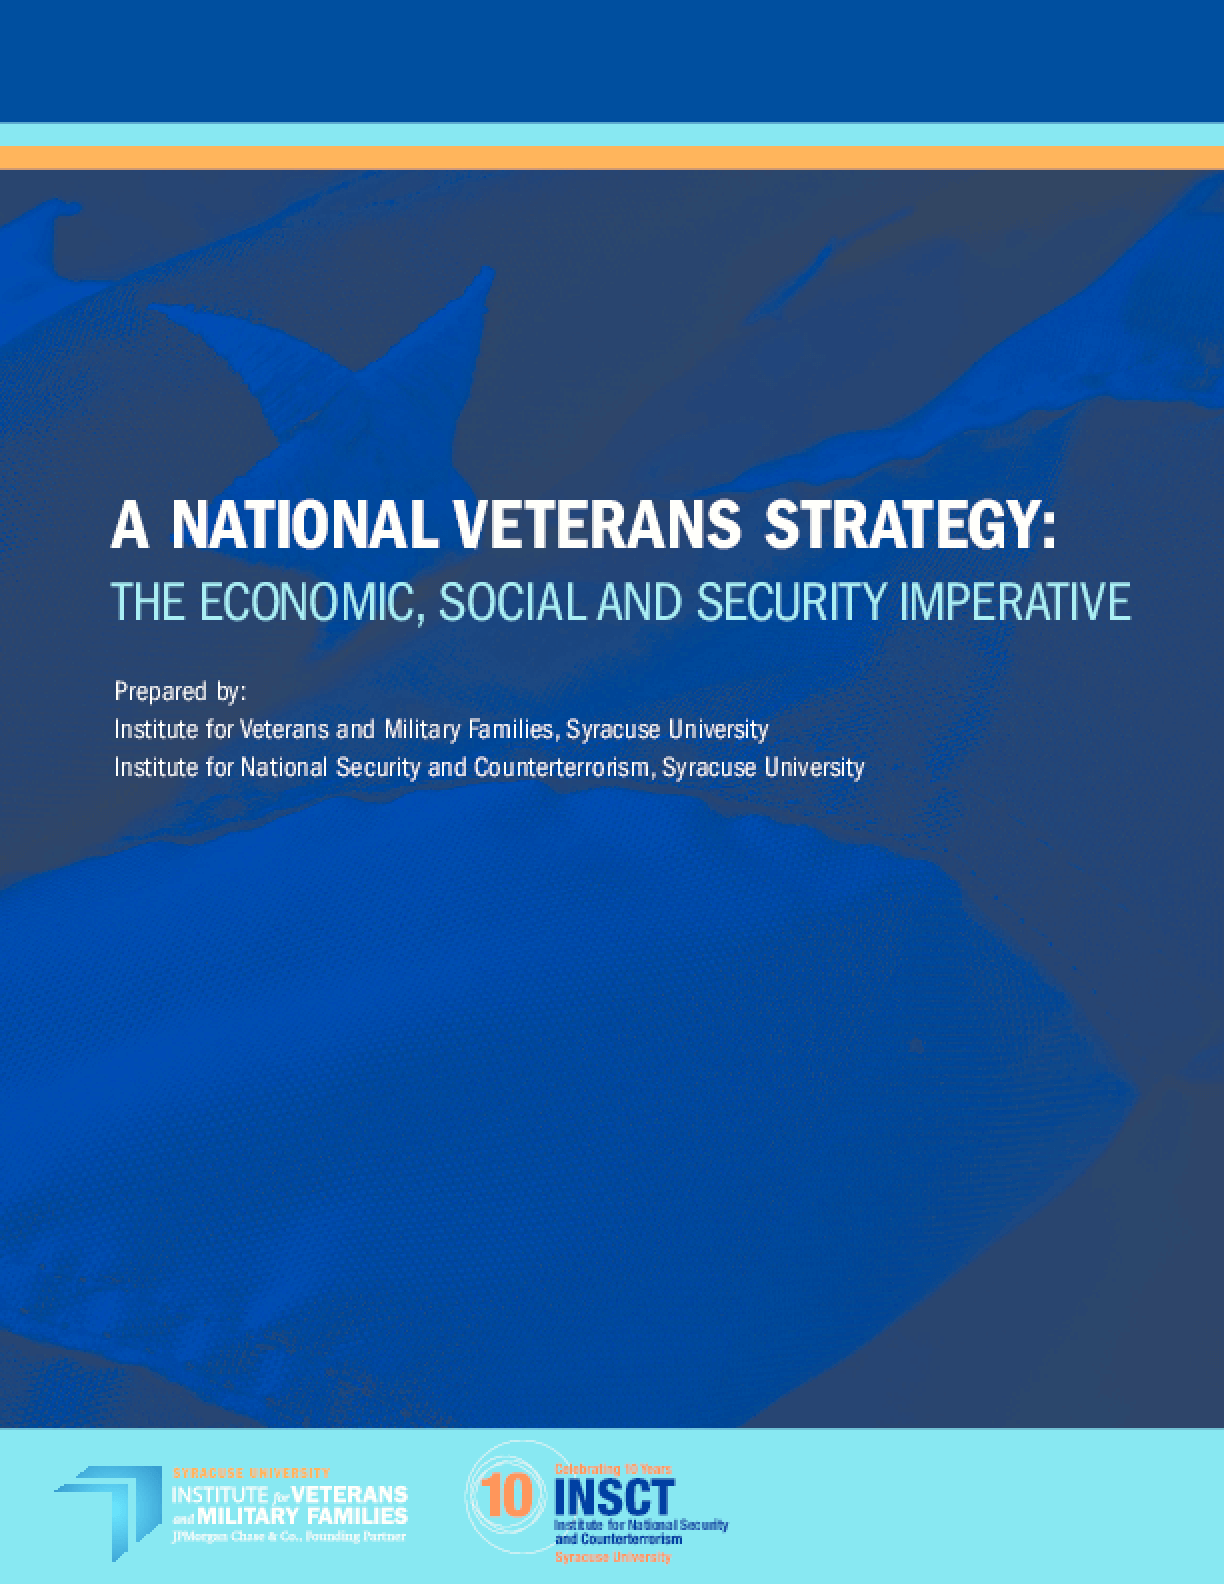 A National Veterans Strategy: The Economic, Social and Security Imperative